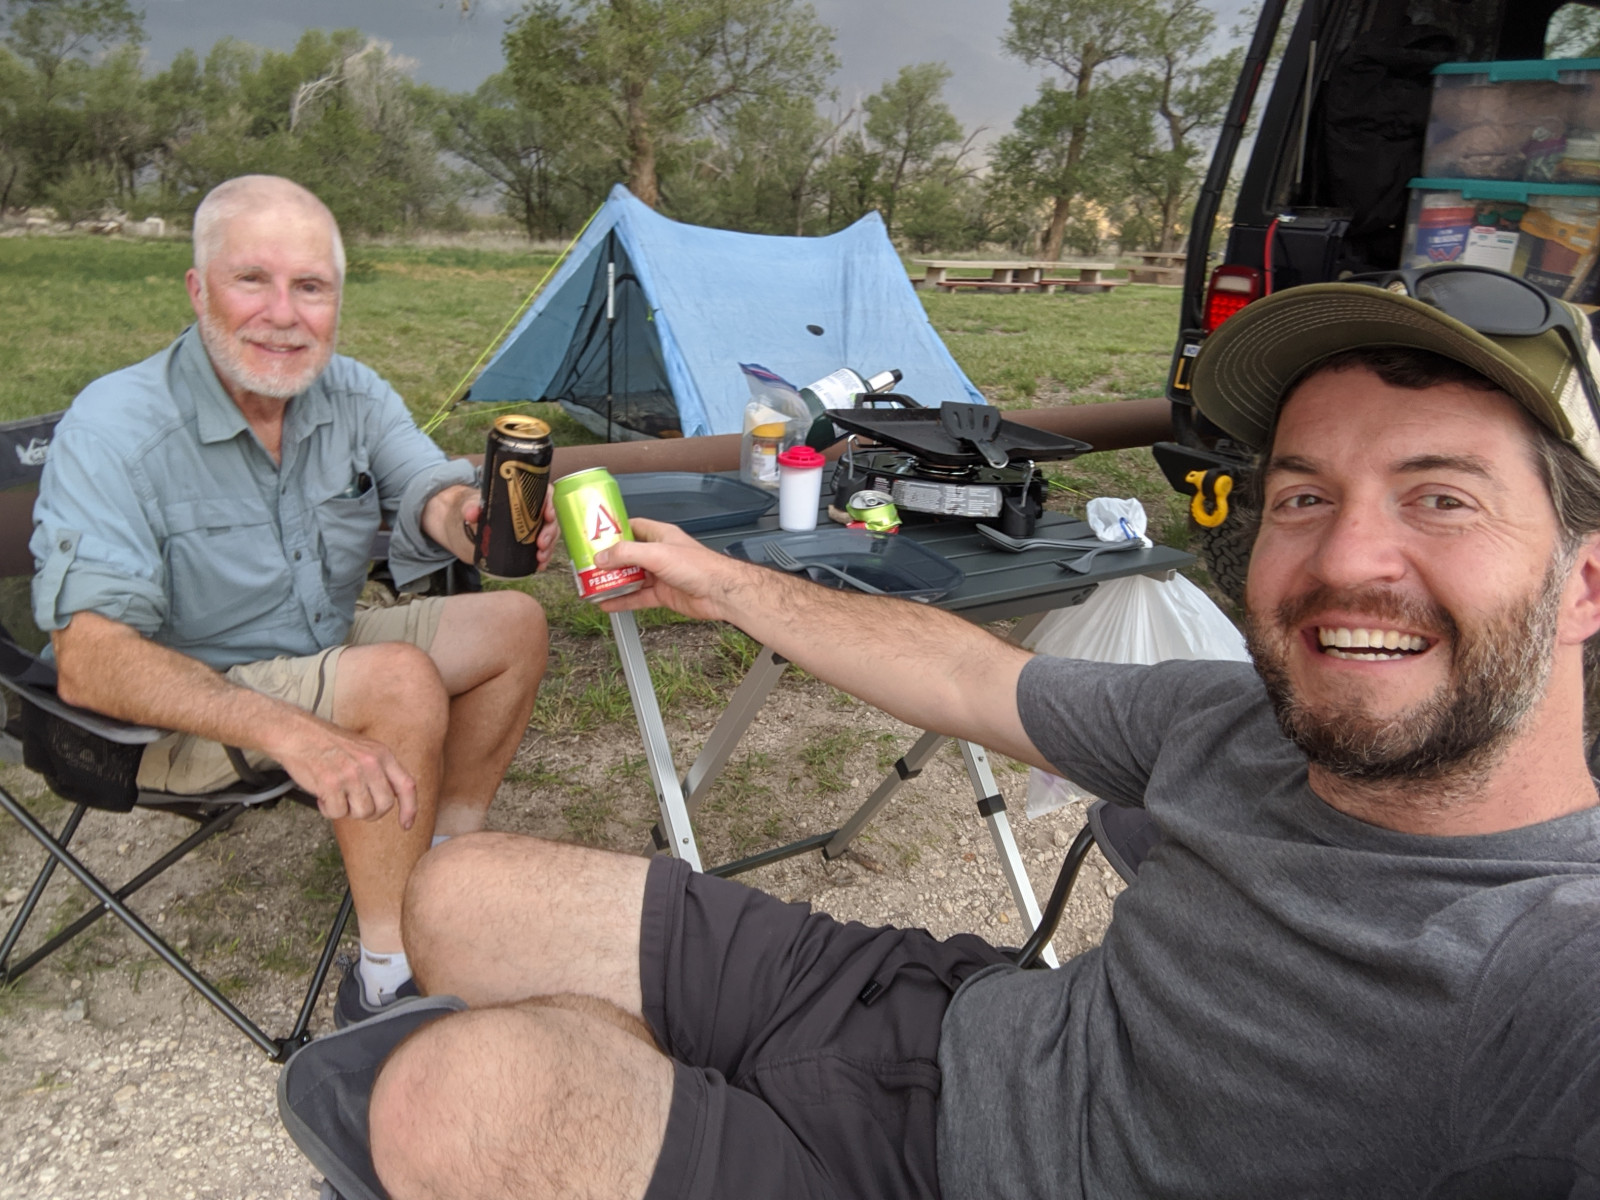 Cheers in Rita Blanca National Grassland